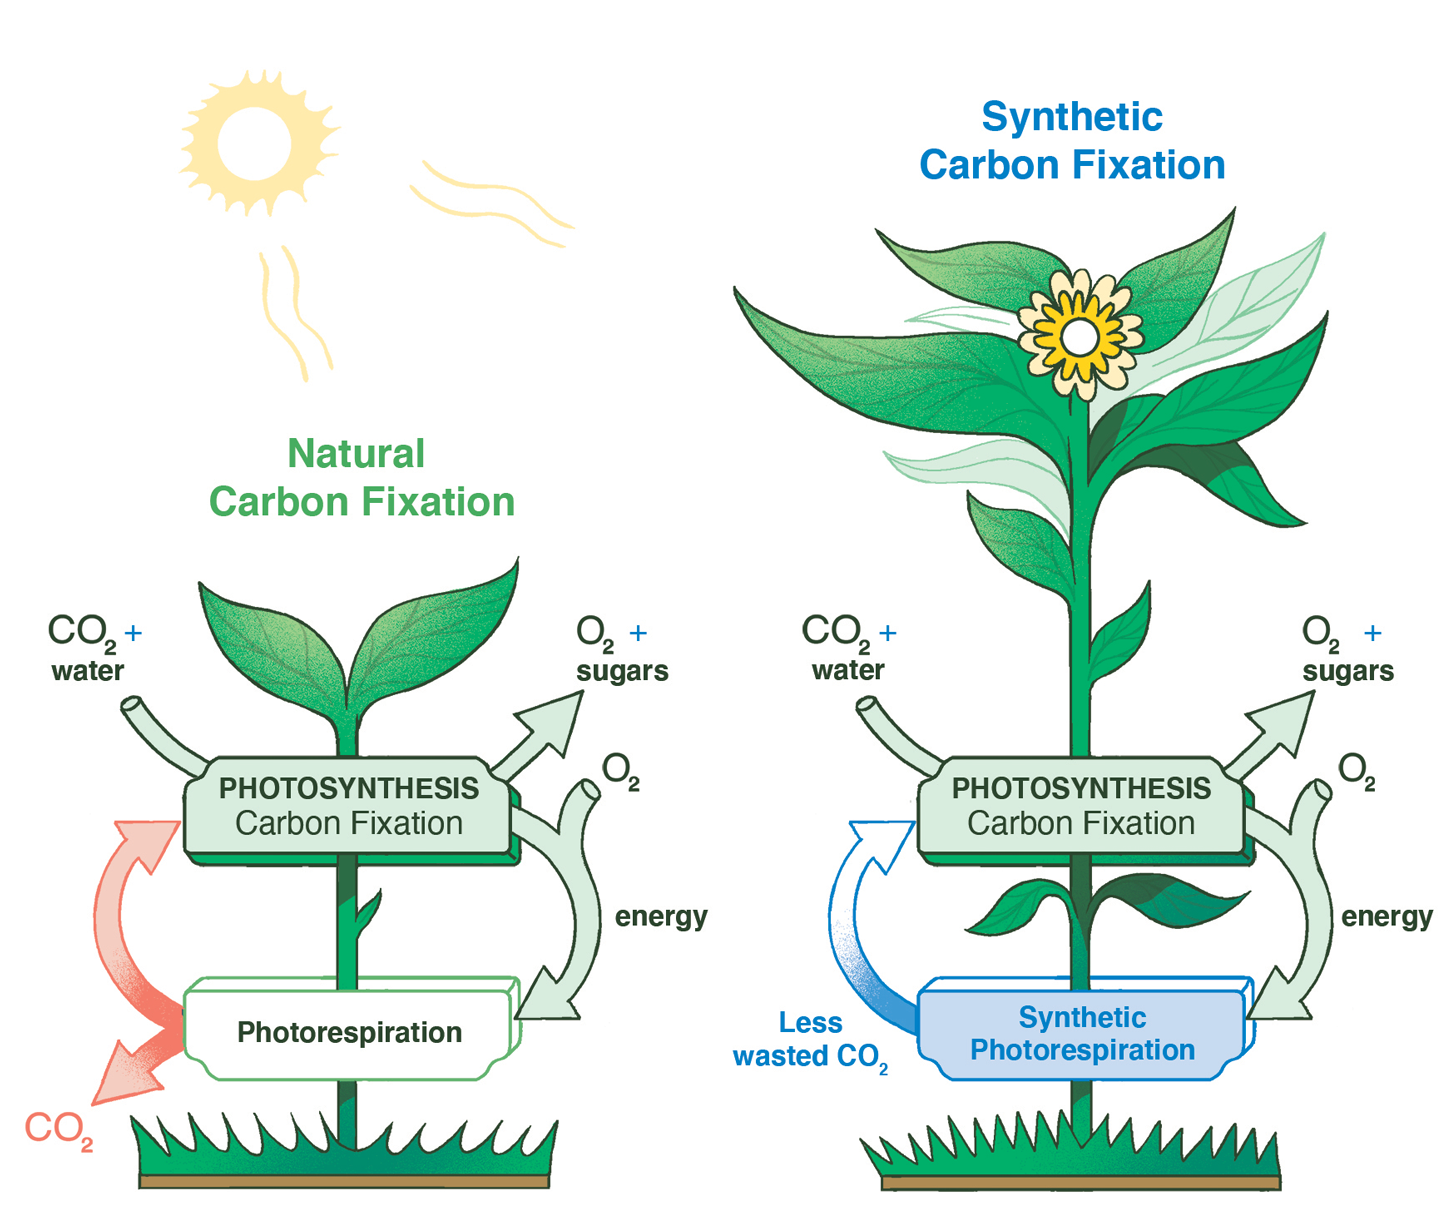 Comparison of natural and synthetic carbon fixation